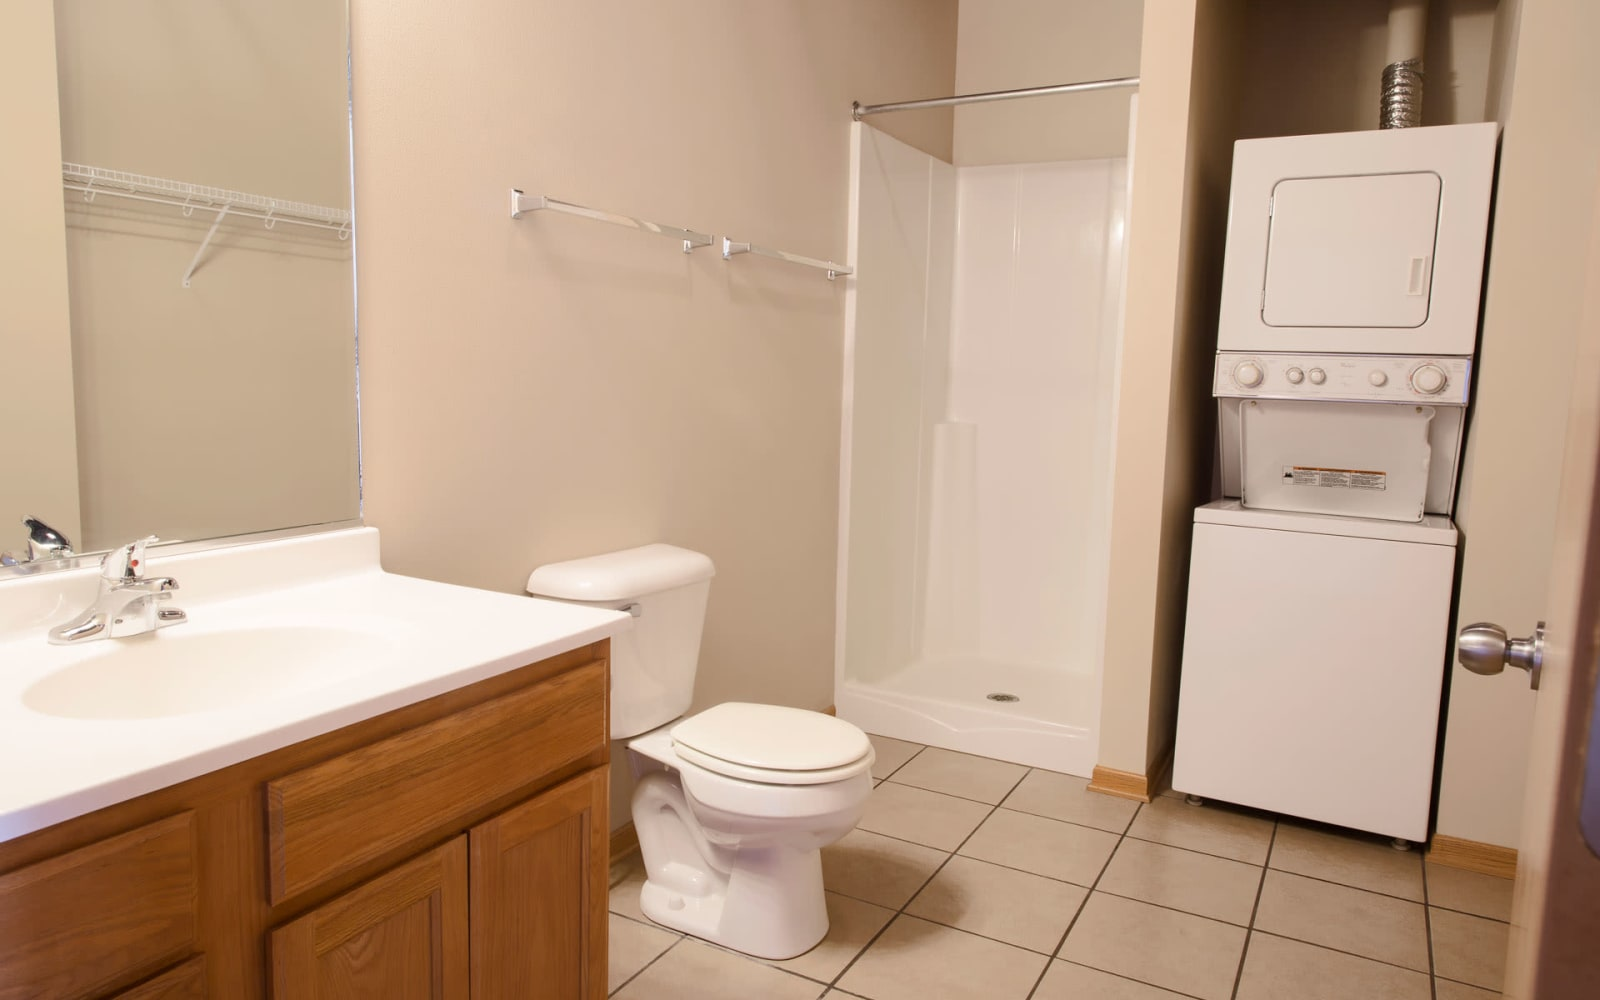 Studio apartment bathroom with a stacked washer and dryer at West Towne in Ames, Iowa